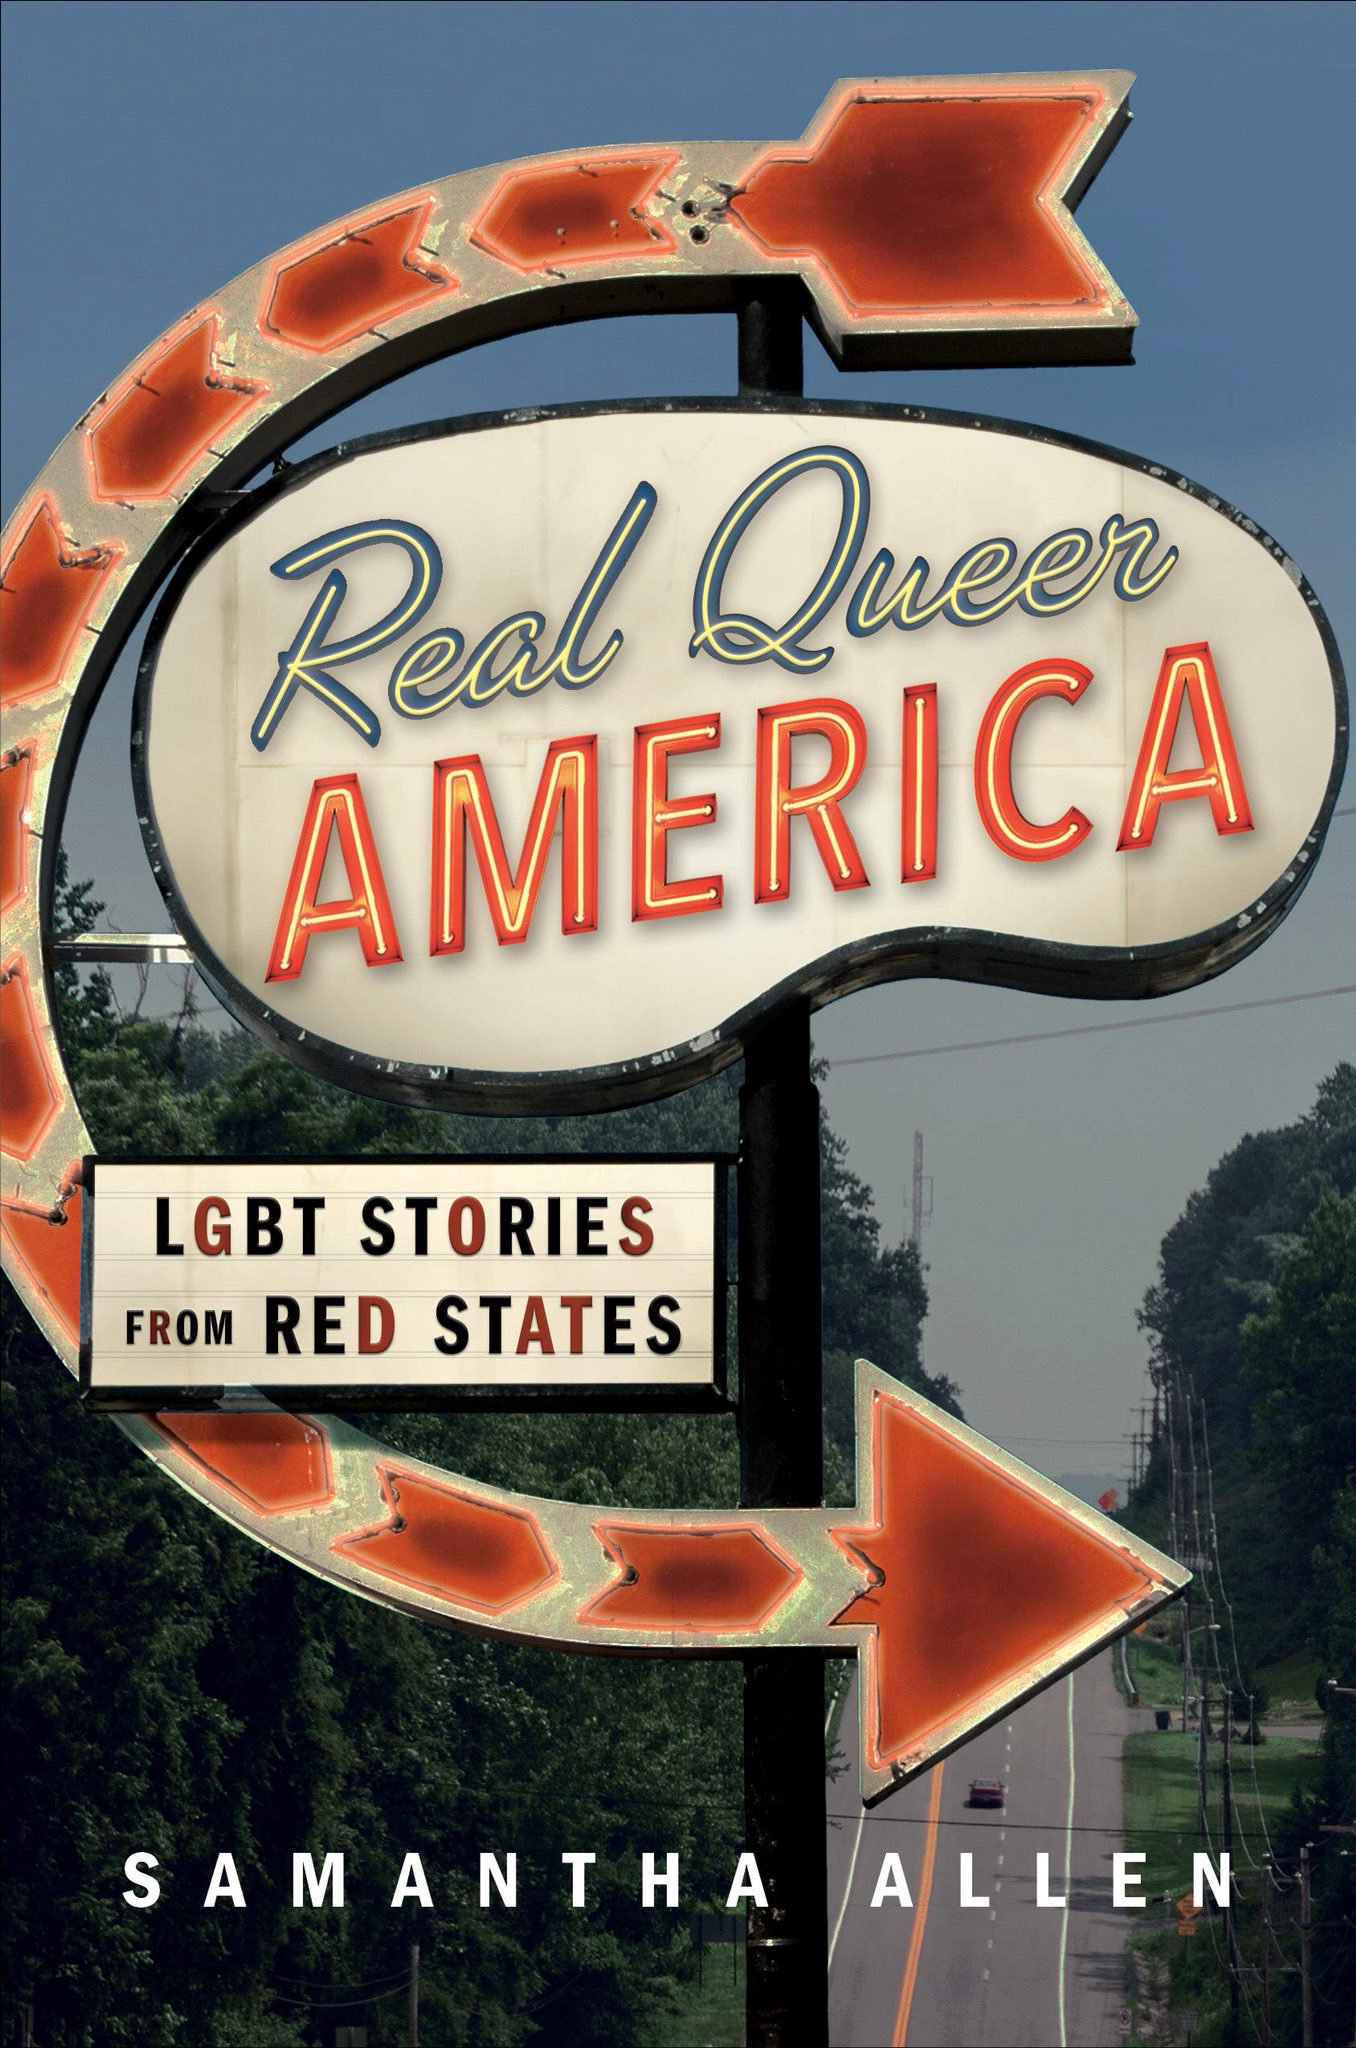 Real Queer America by Samantha Allen book cover